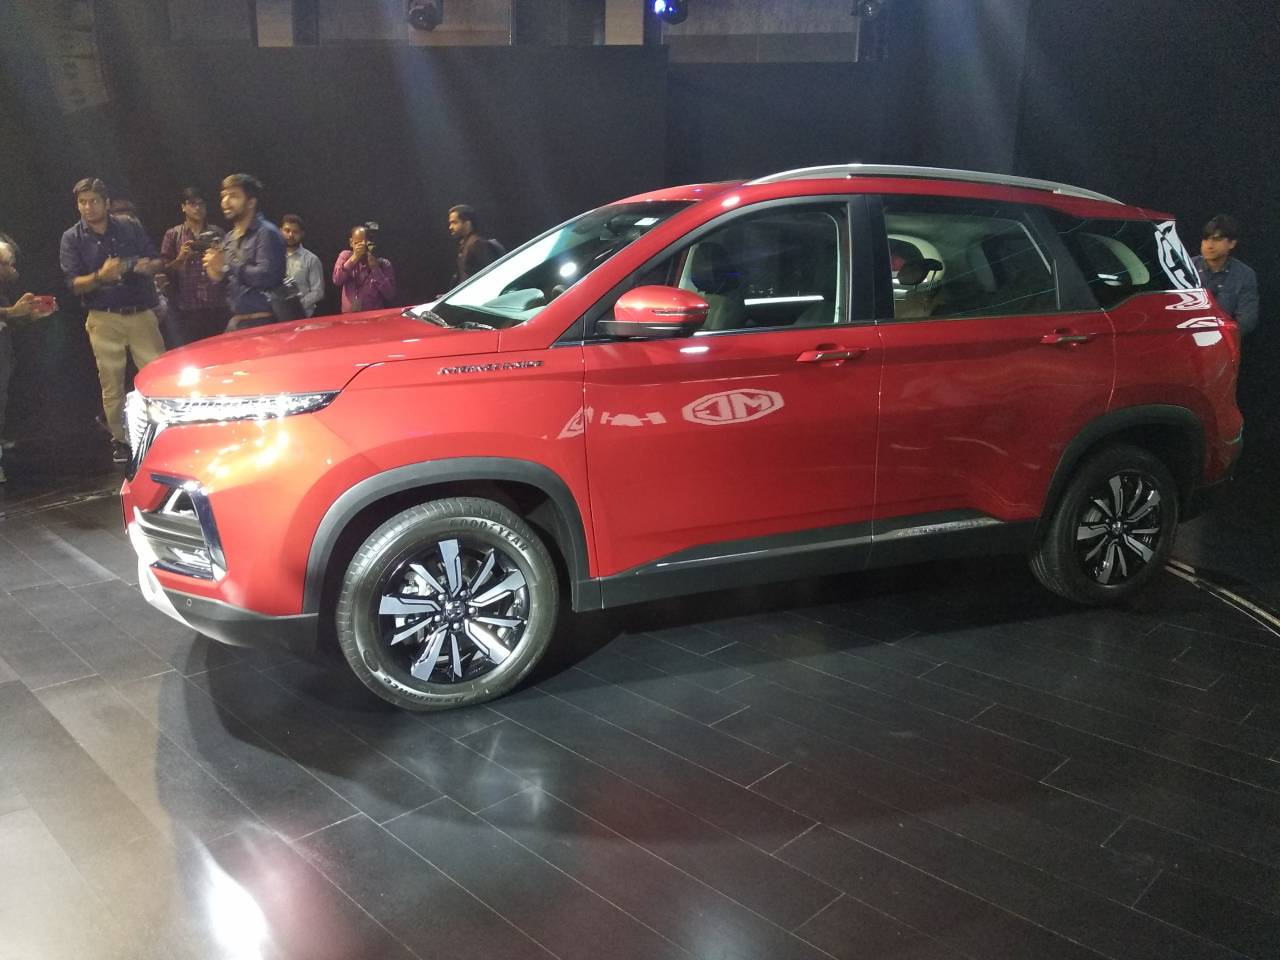 MG will be offering two engine and two fuel options on the Hector. There will be in all four variants and five colour options. Pic courtesy: Moneycontrol